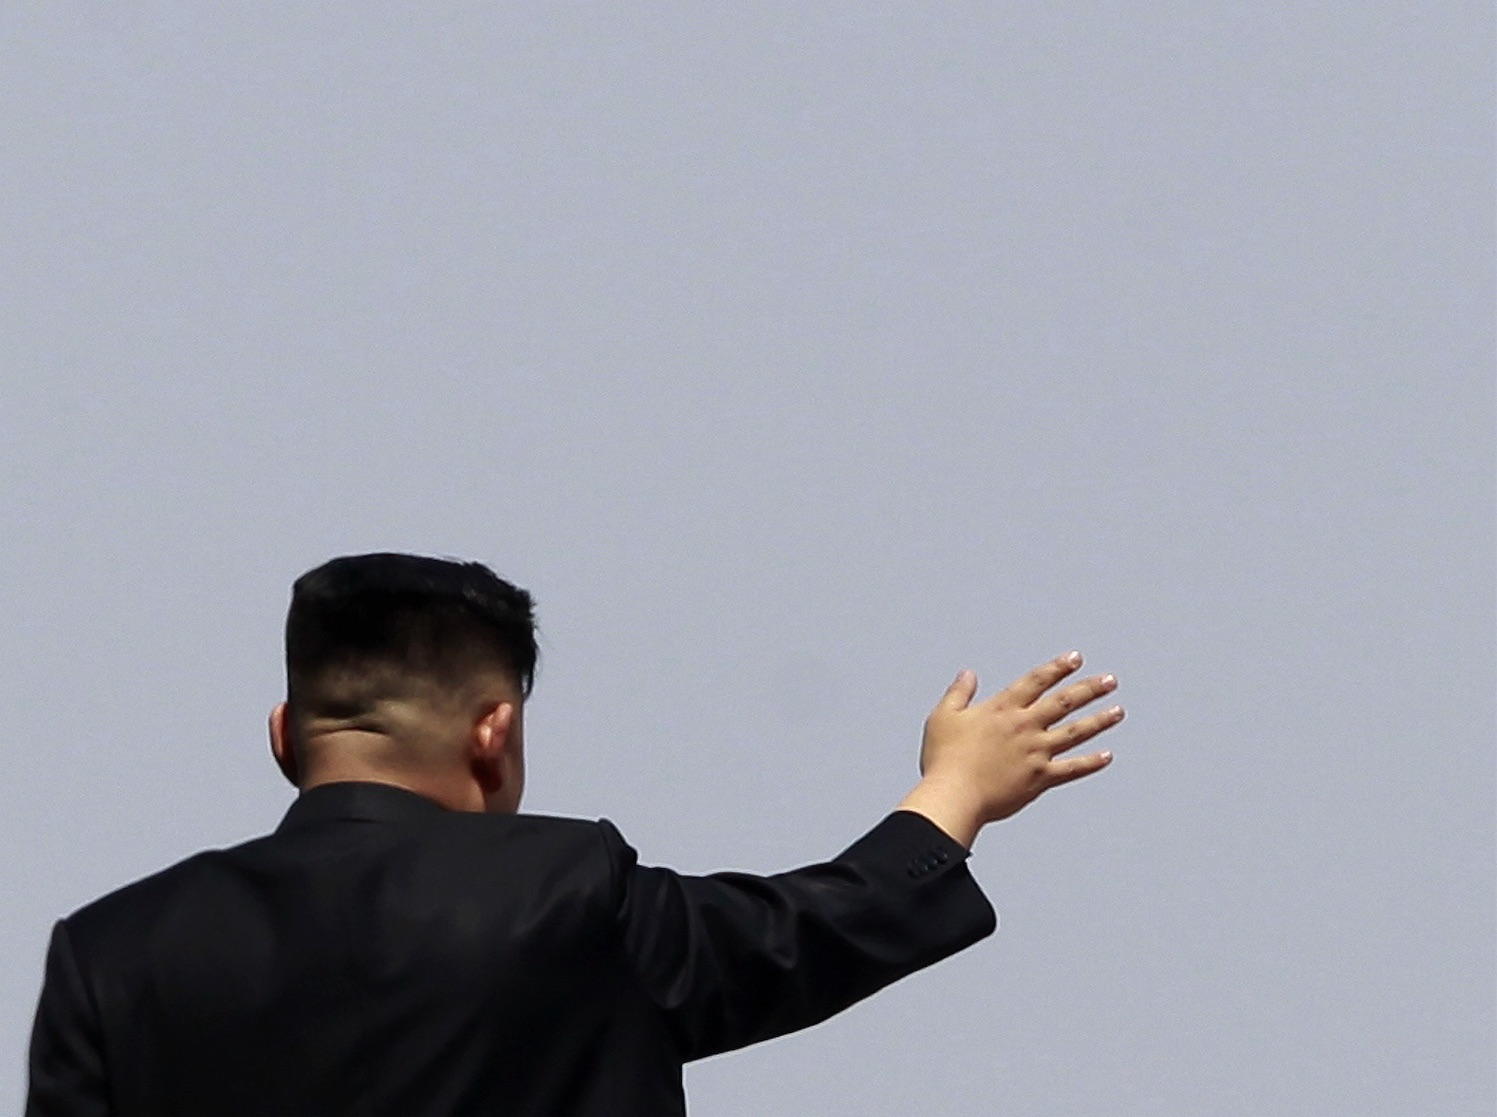 north korea nuclear issue essay Free essay: the recent turn of events in north korea with its alleged admission to possessing nuclear weapon has created nervous tension in the far east.